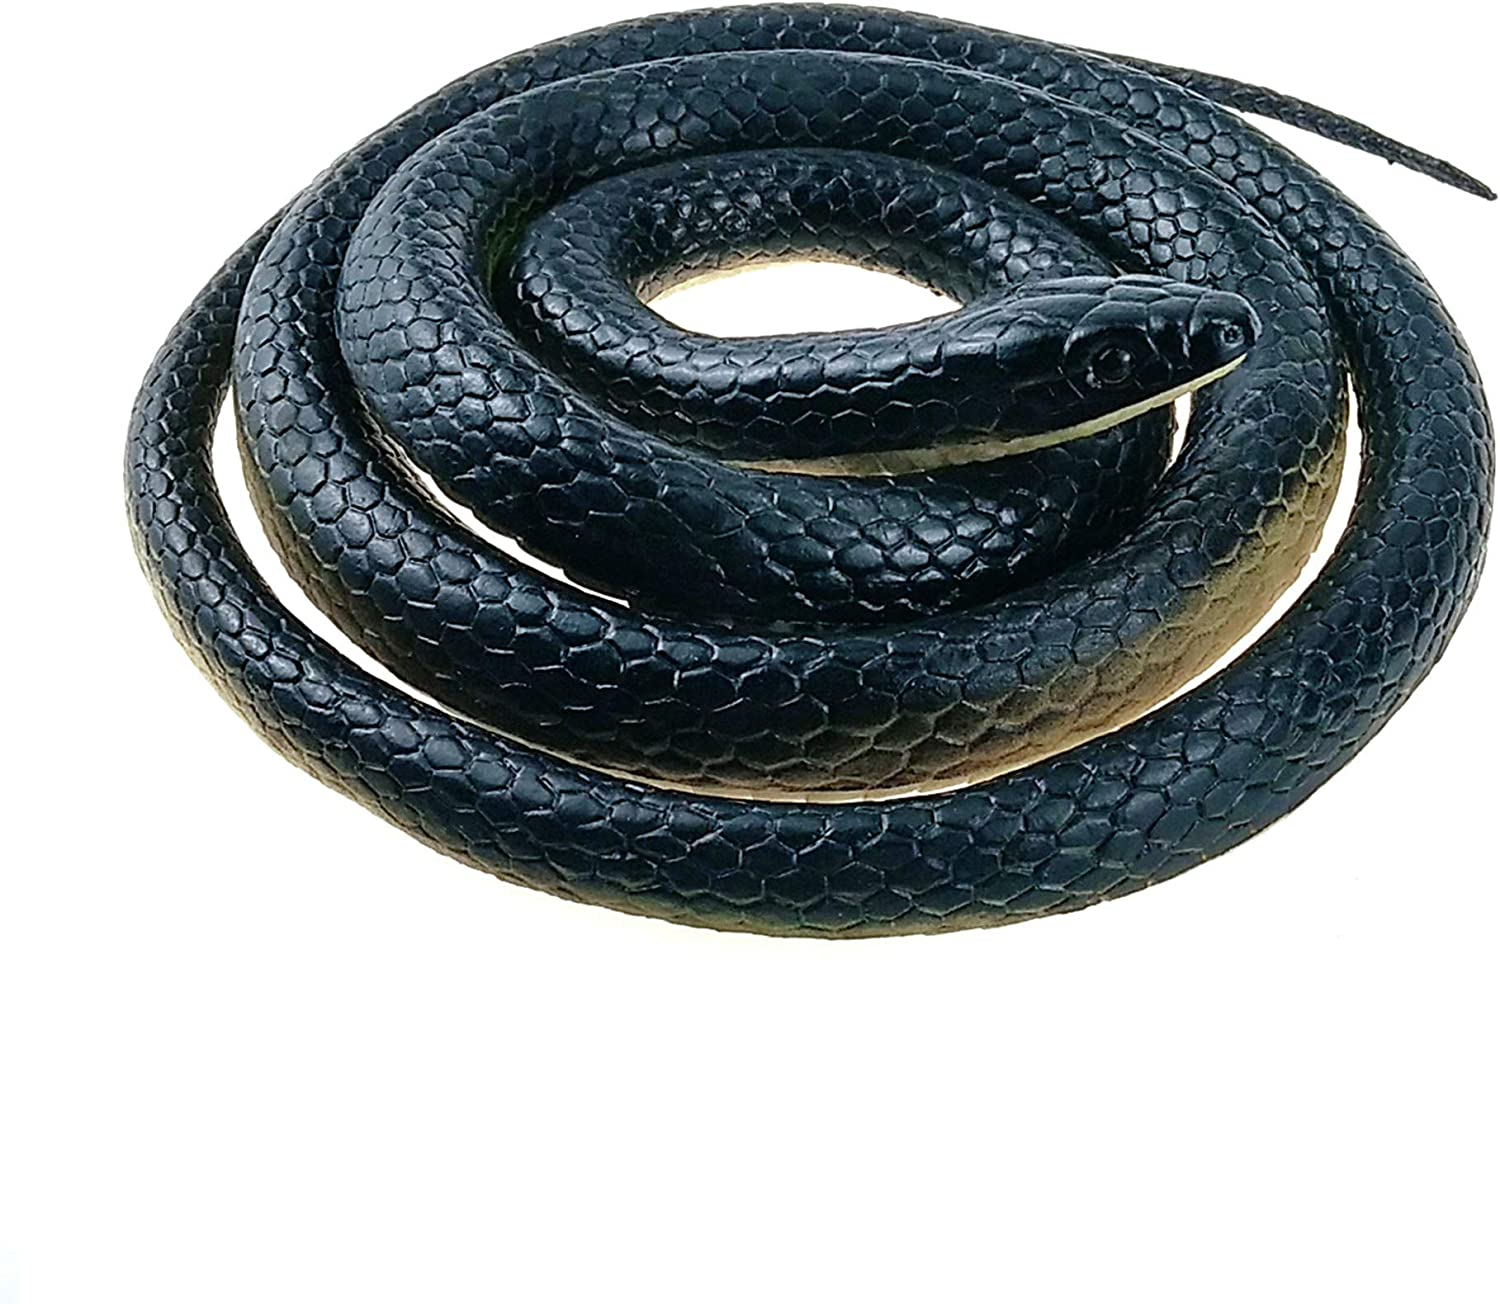 Nakimo Realistic Rubber Fake Snake Toy 50 Inch Mamba for Garden Props and Practical Joke